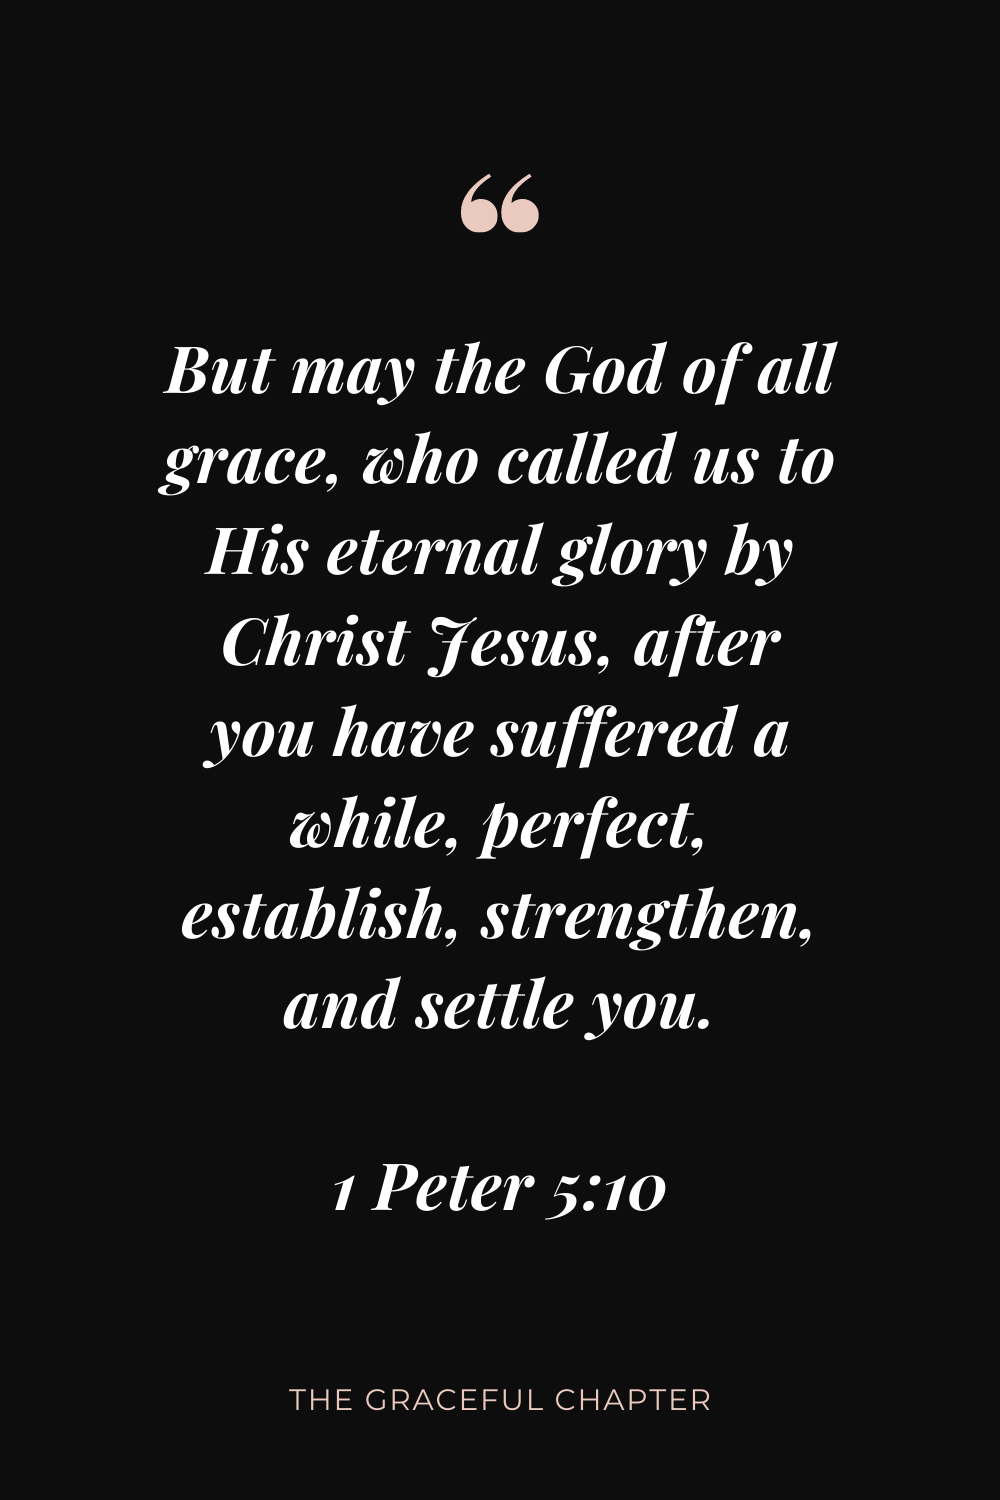 But may the God of all grace, who called us to His eternal glory by Christ Jesus, after you have suffered a while, perfect, establish, strengthen, and settle you. 1 Peter 5:10